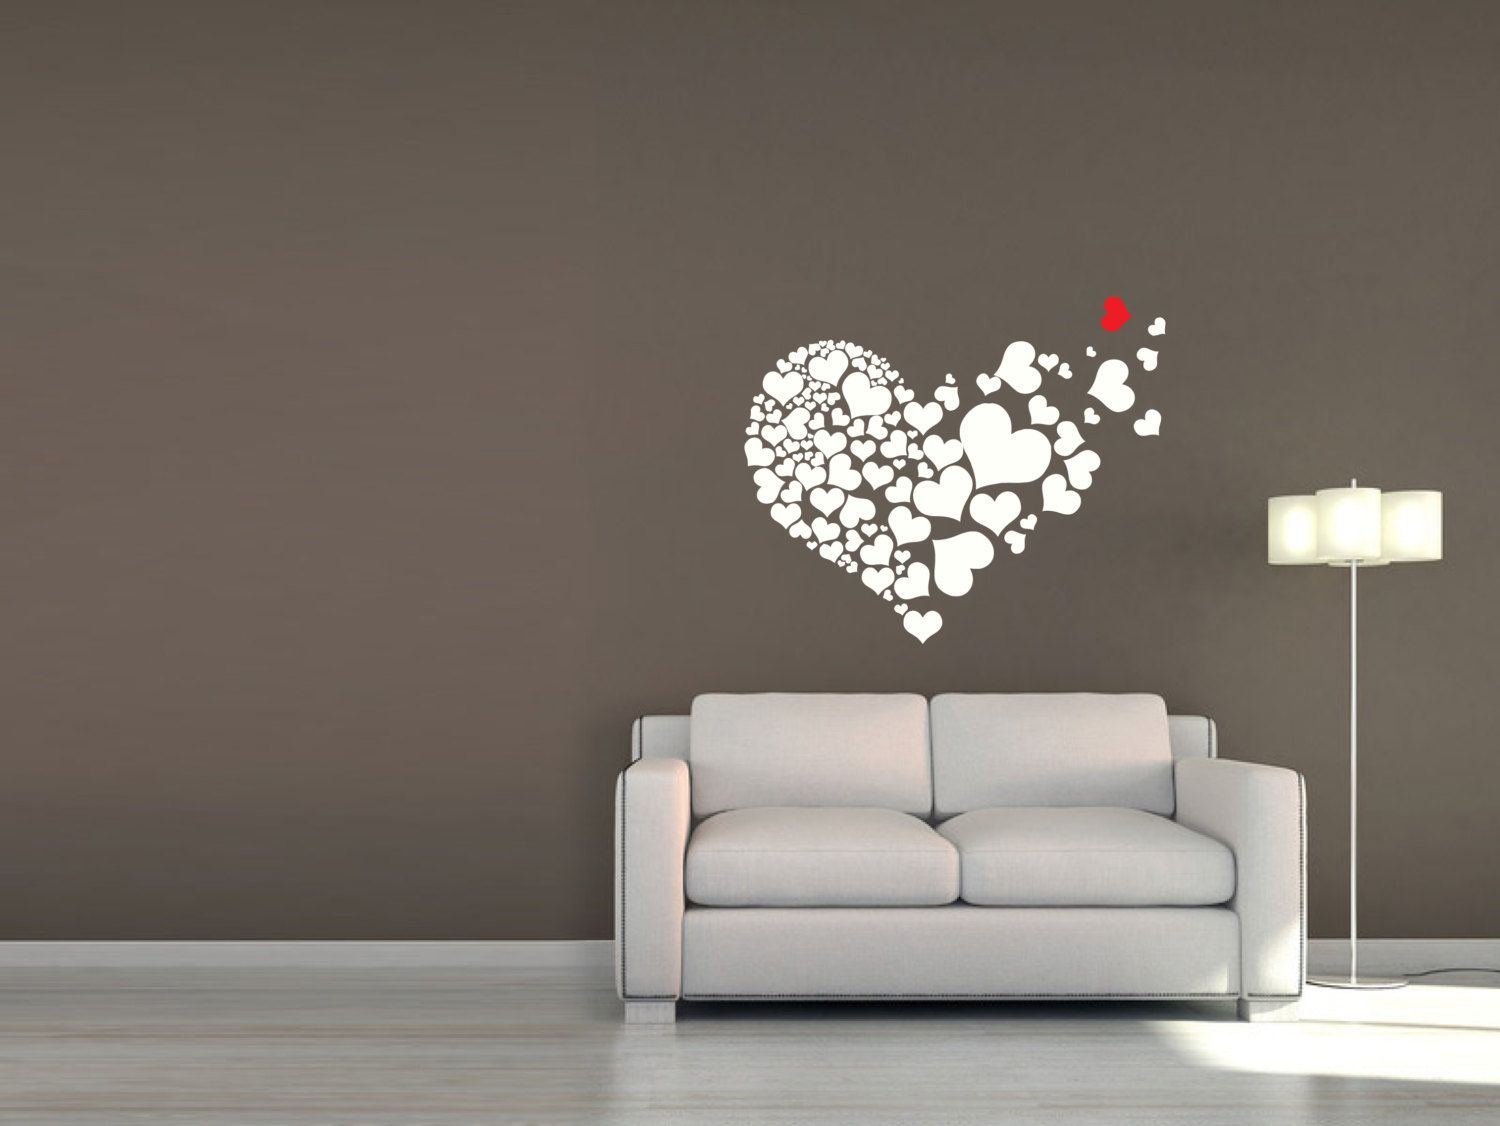 Romantic Bedroom Wall Decals wall sticker love hearts | removable heart design in black grey